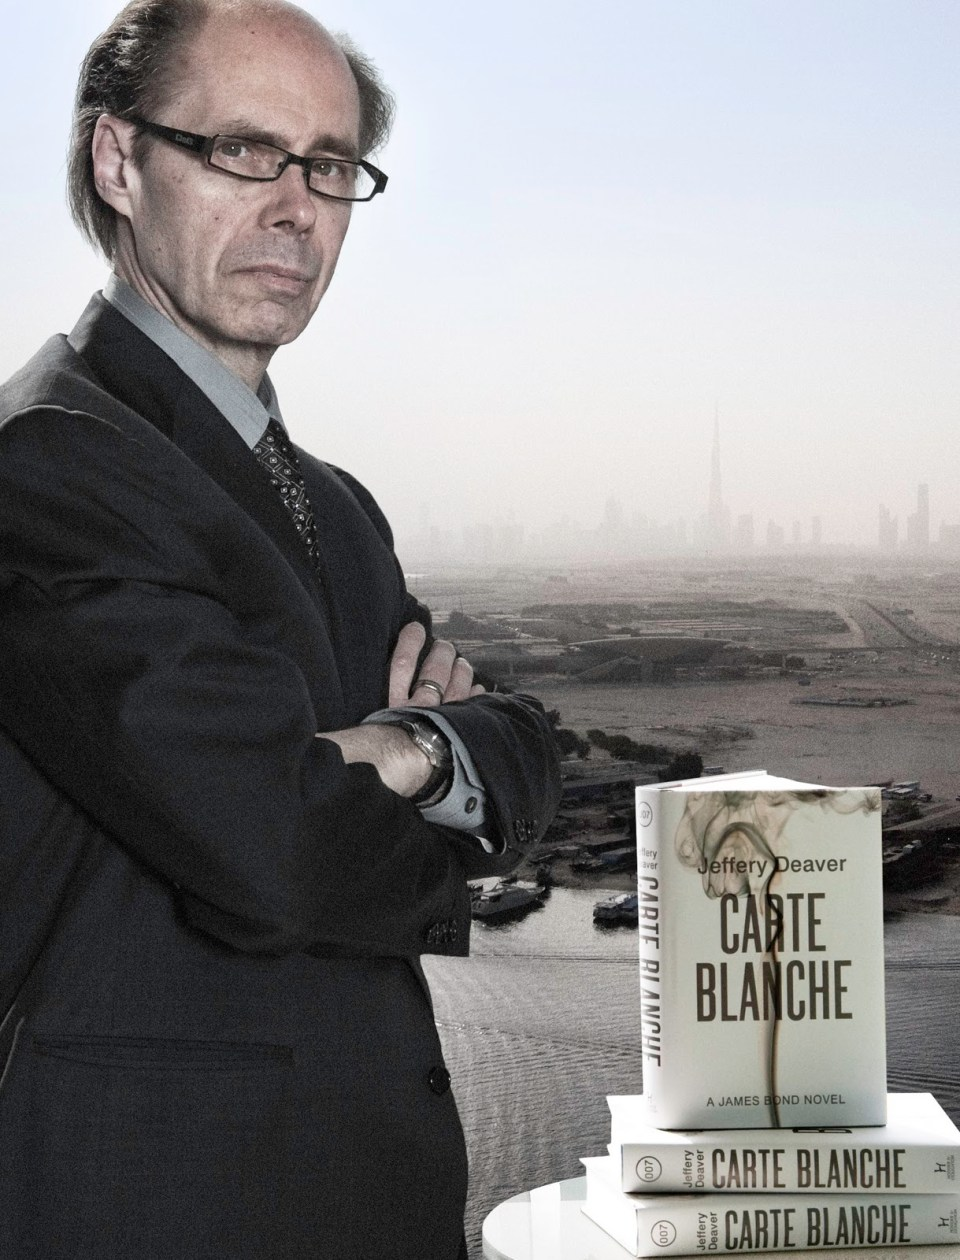 Carte_Blanche_Jeffery_Deaver_with_book_in_Dubai_United_Arab_Emirates_UK_cover_Hodder_and_Stroughton